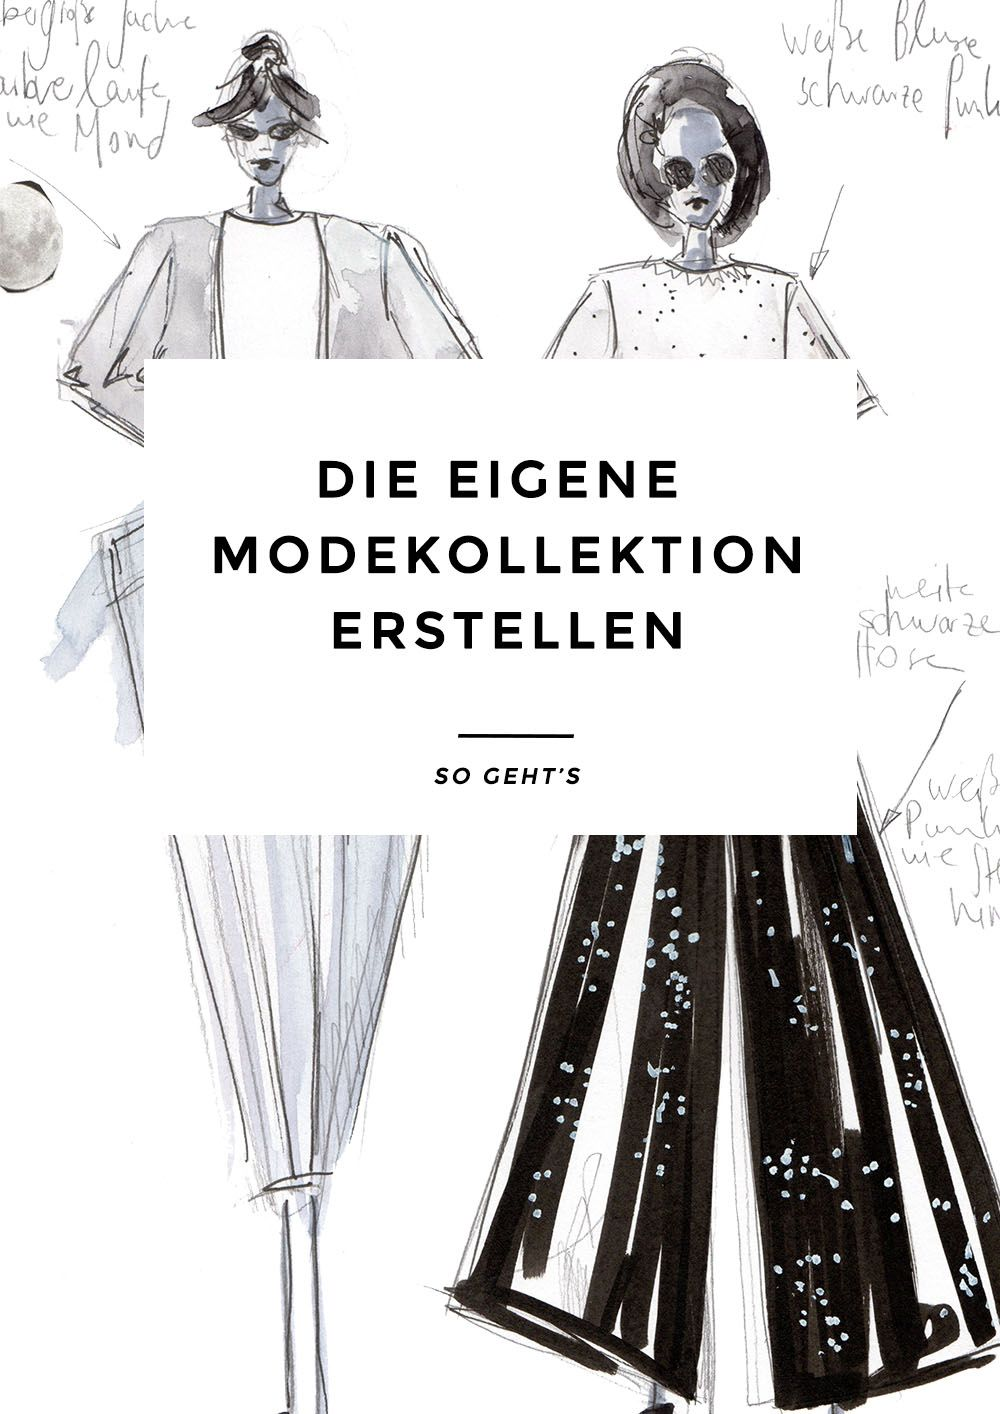 die eigene modekollektion erstellen so geht 39 s fashion illustrations pinterest mode. Black Bedroom Furniture Sets. Home Design Ideas